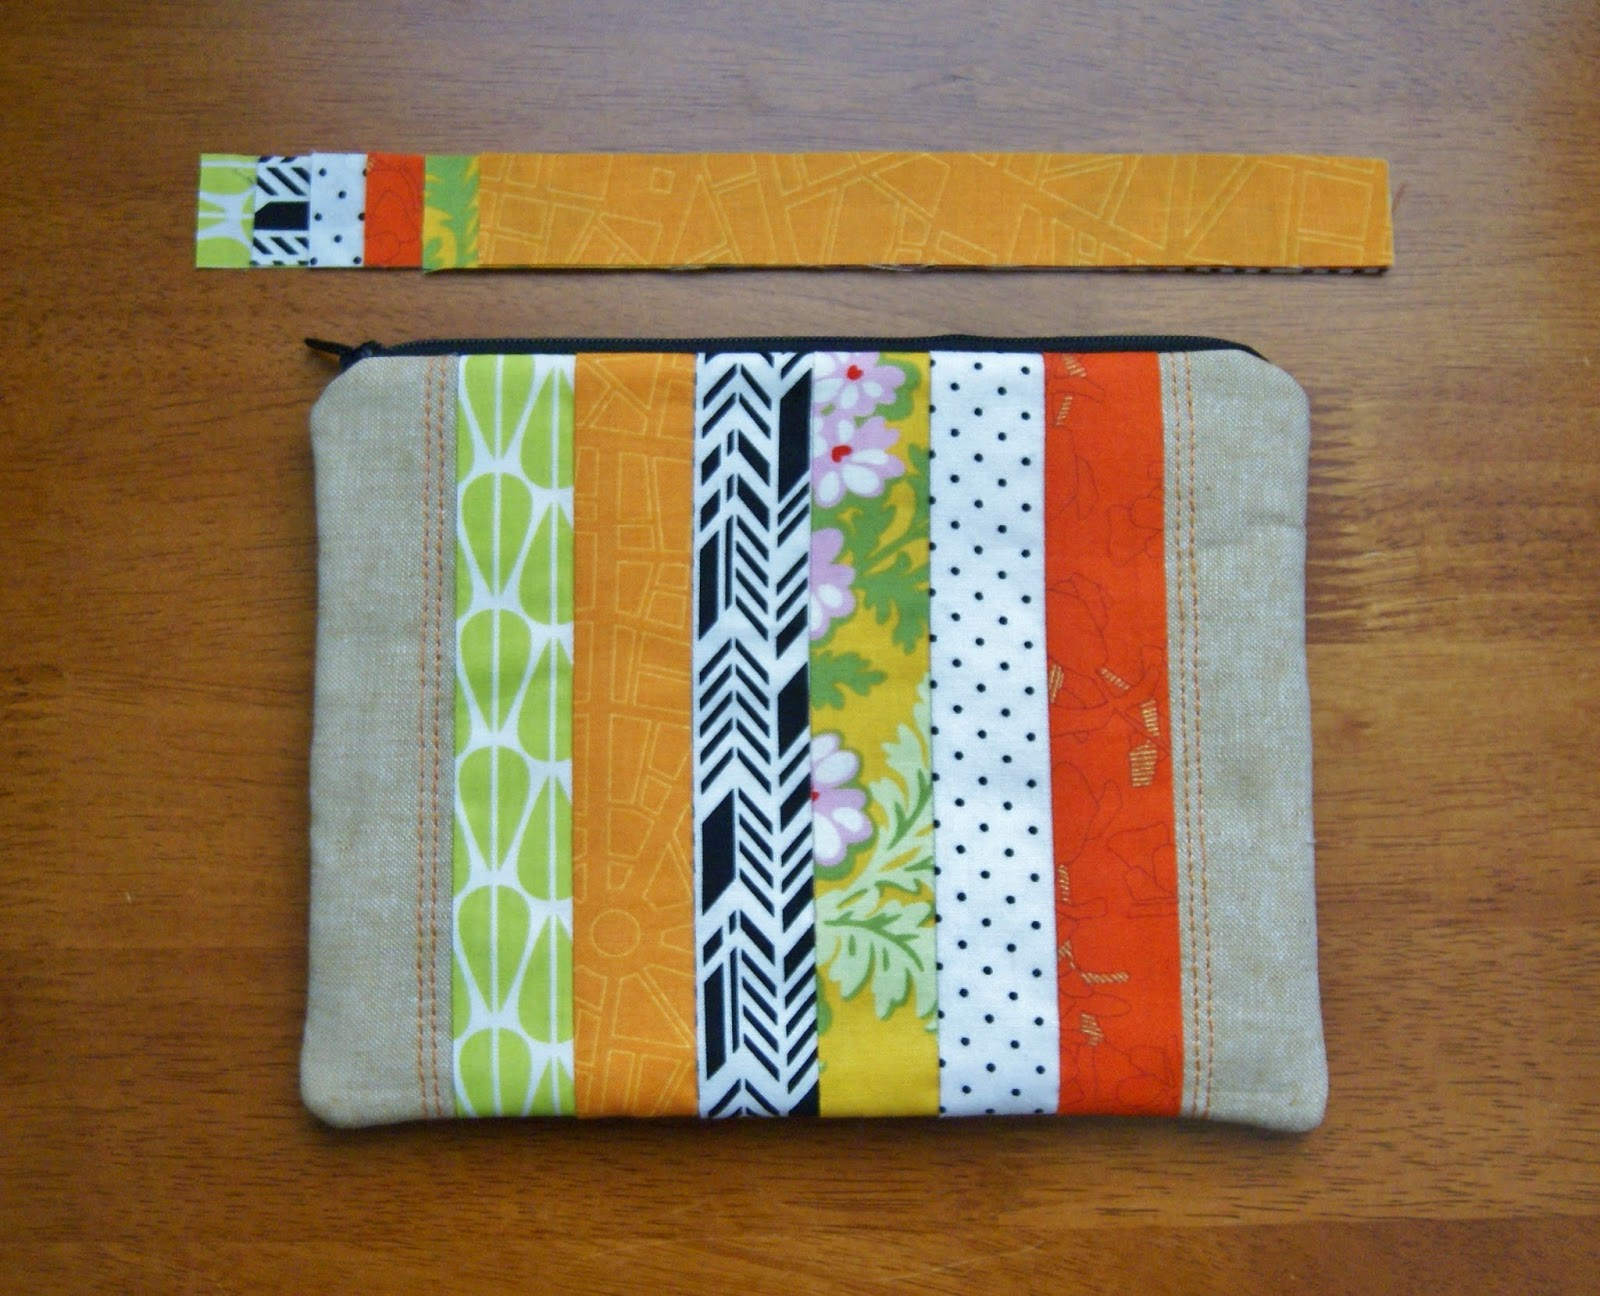 Palm Springs Fabric Audition Zipper Pouch by Heidi Staples of Fabric Mutt